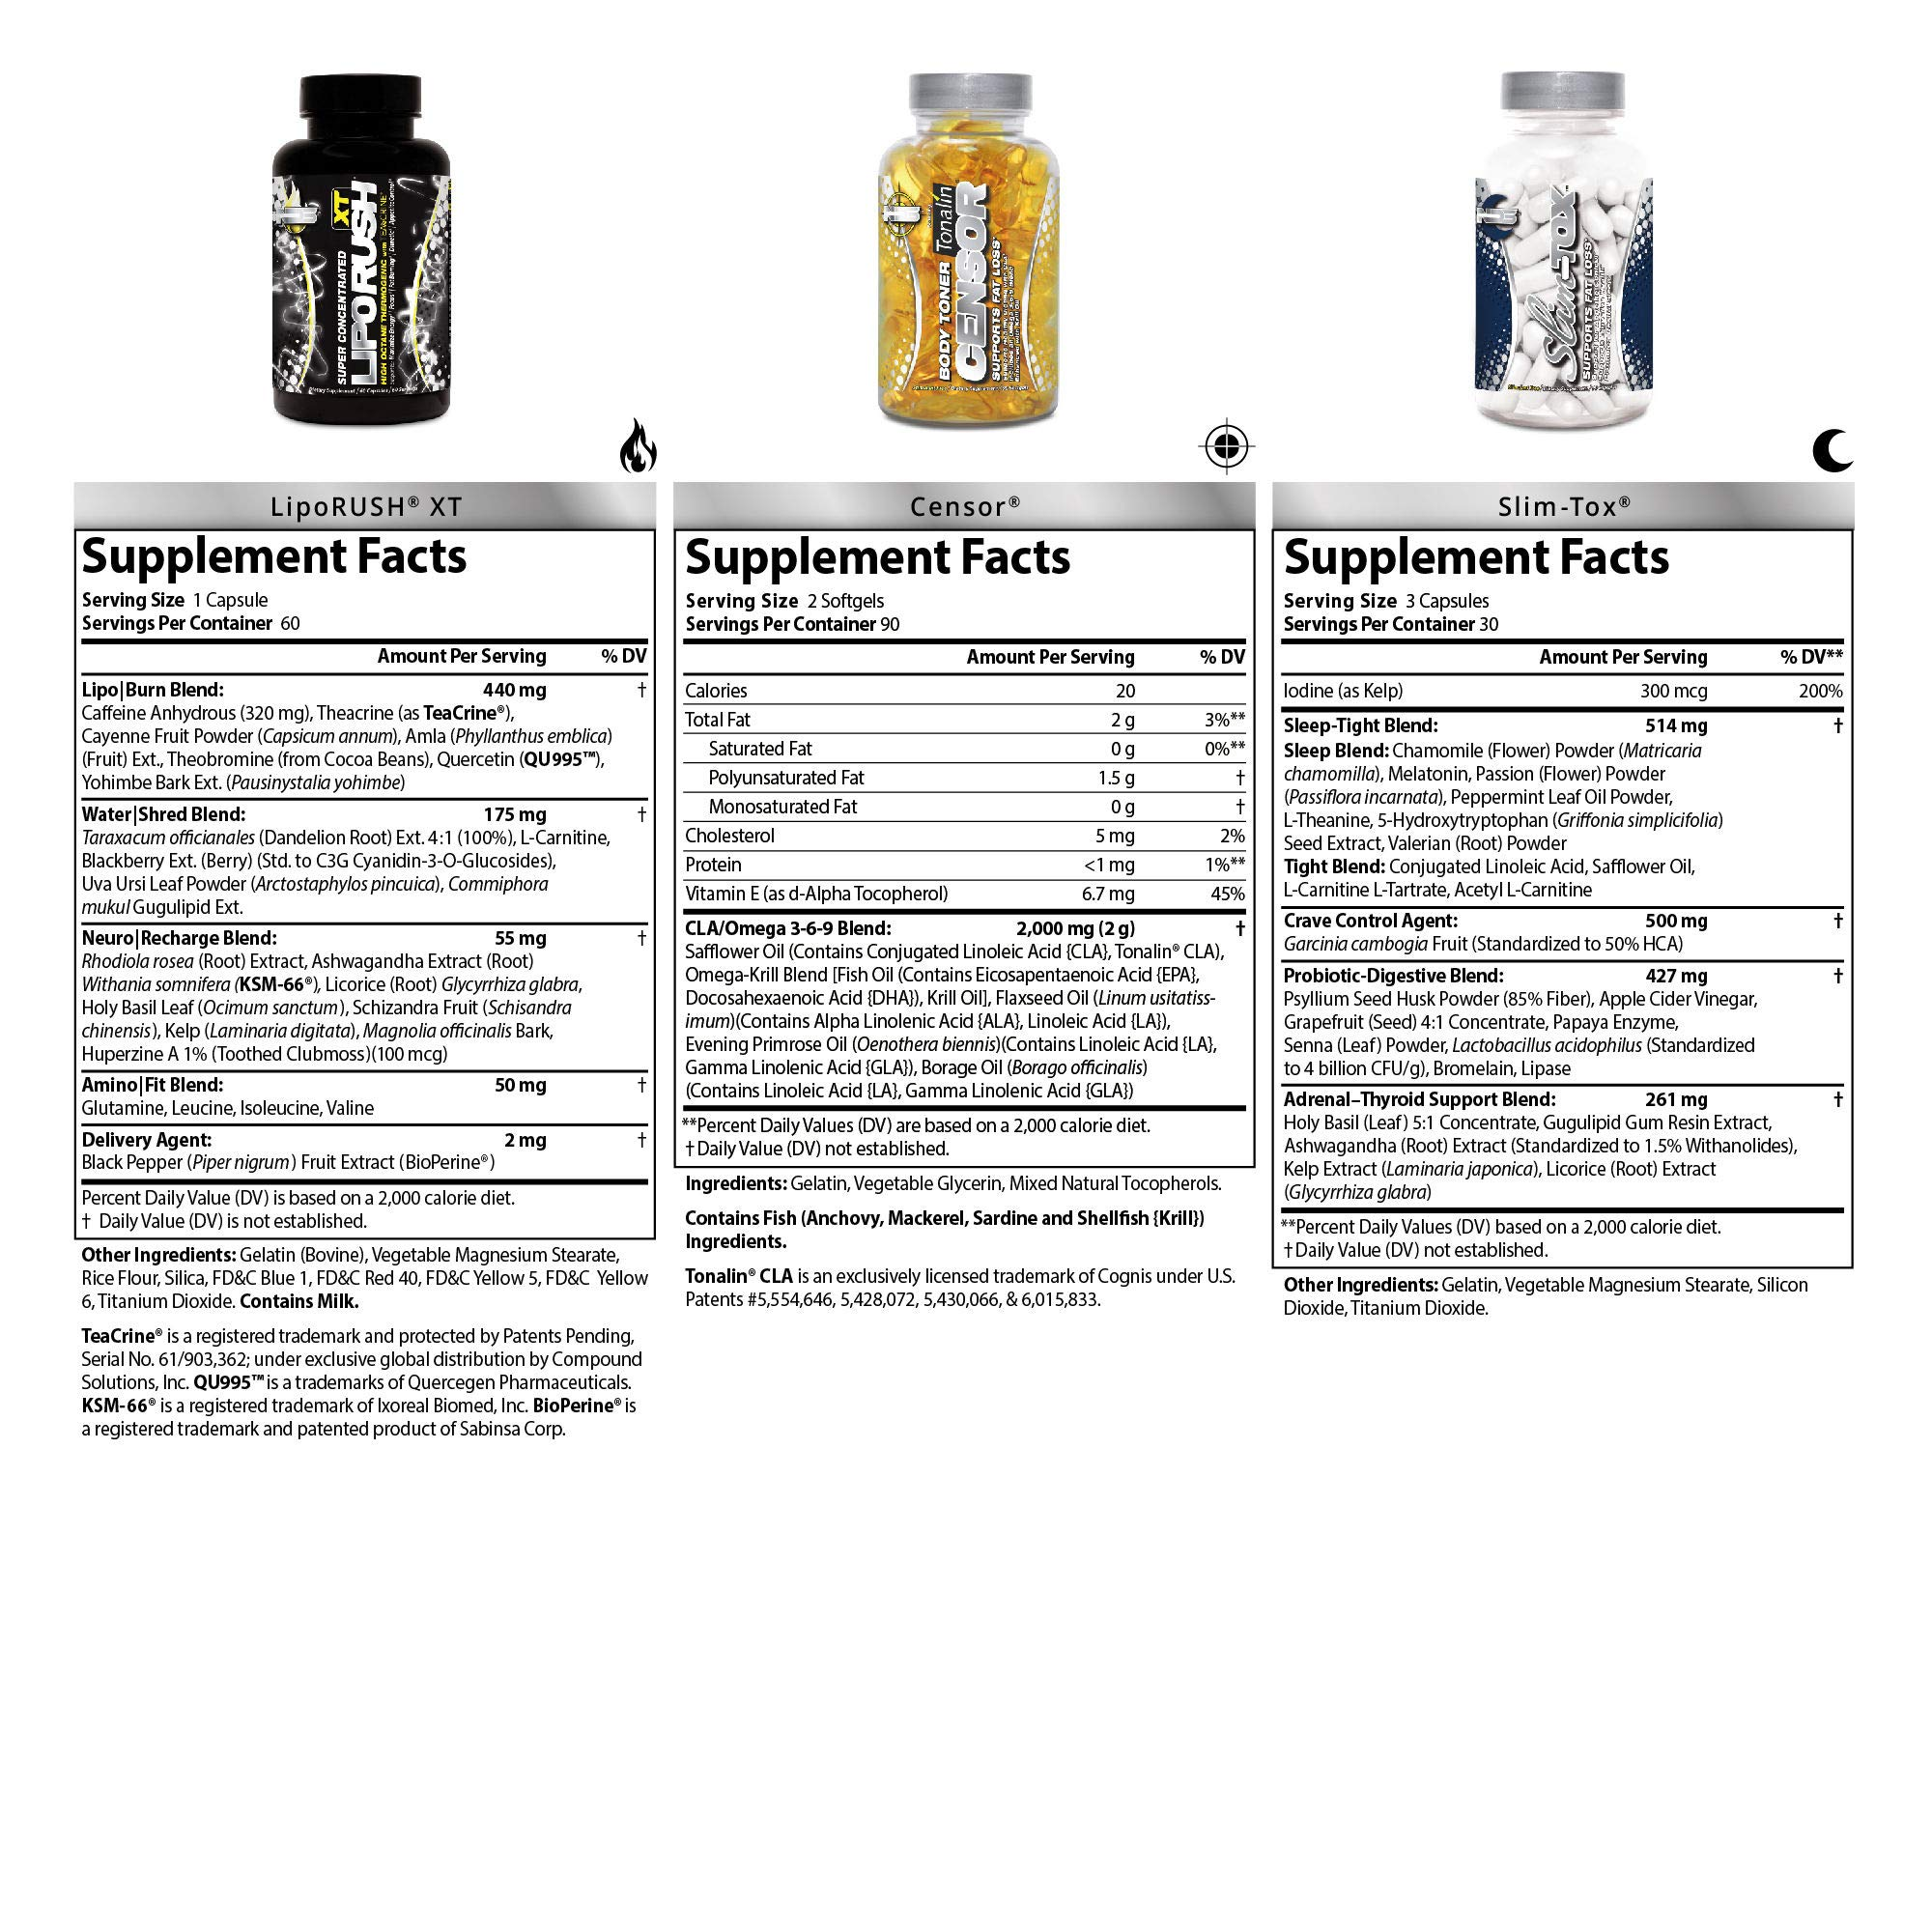 NDS Nutrition LeanForm24 - Weight Loss, Decrease Appetite, Energy Booster - Maximum Strength Diet Kit with L-Carnitine and CLA - LipoRush XT 60 Capsules - Censor 180 Softgels - Slim-Tox 90 Capsules by LeanForm24 (Image #2)